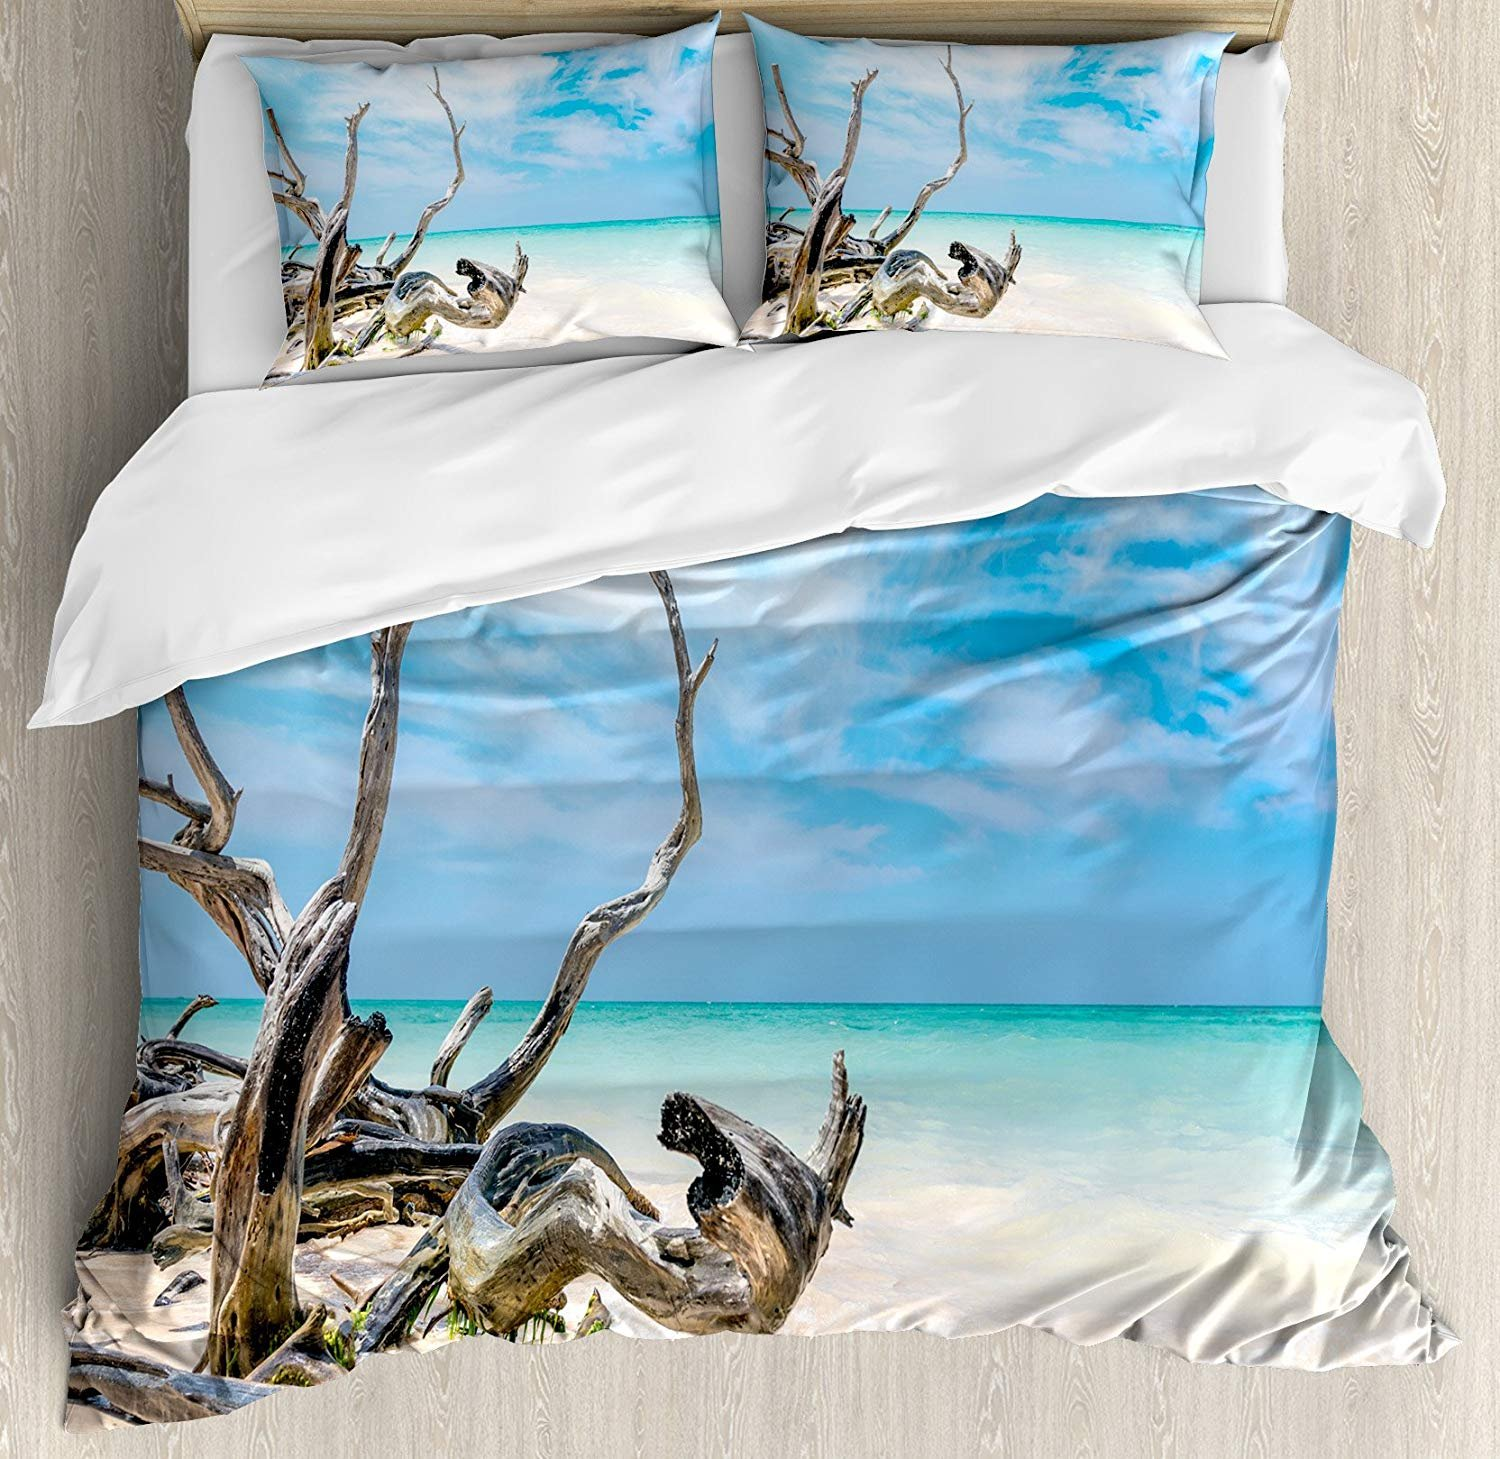 Driftwood Bedding Duvet Cover Sets for Children/Adults/Kids/Teens Twin Size, Seascape Theme Branches on The Sandy Beach of Cuba and The Sky Image, Hotel Luxury Decorative 4pcs Set, Turquoise Sky Blue by Family Decor (Image #1)